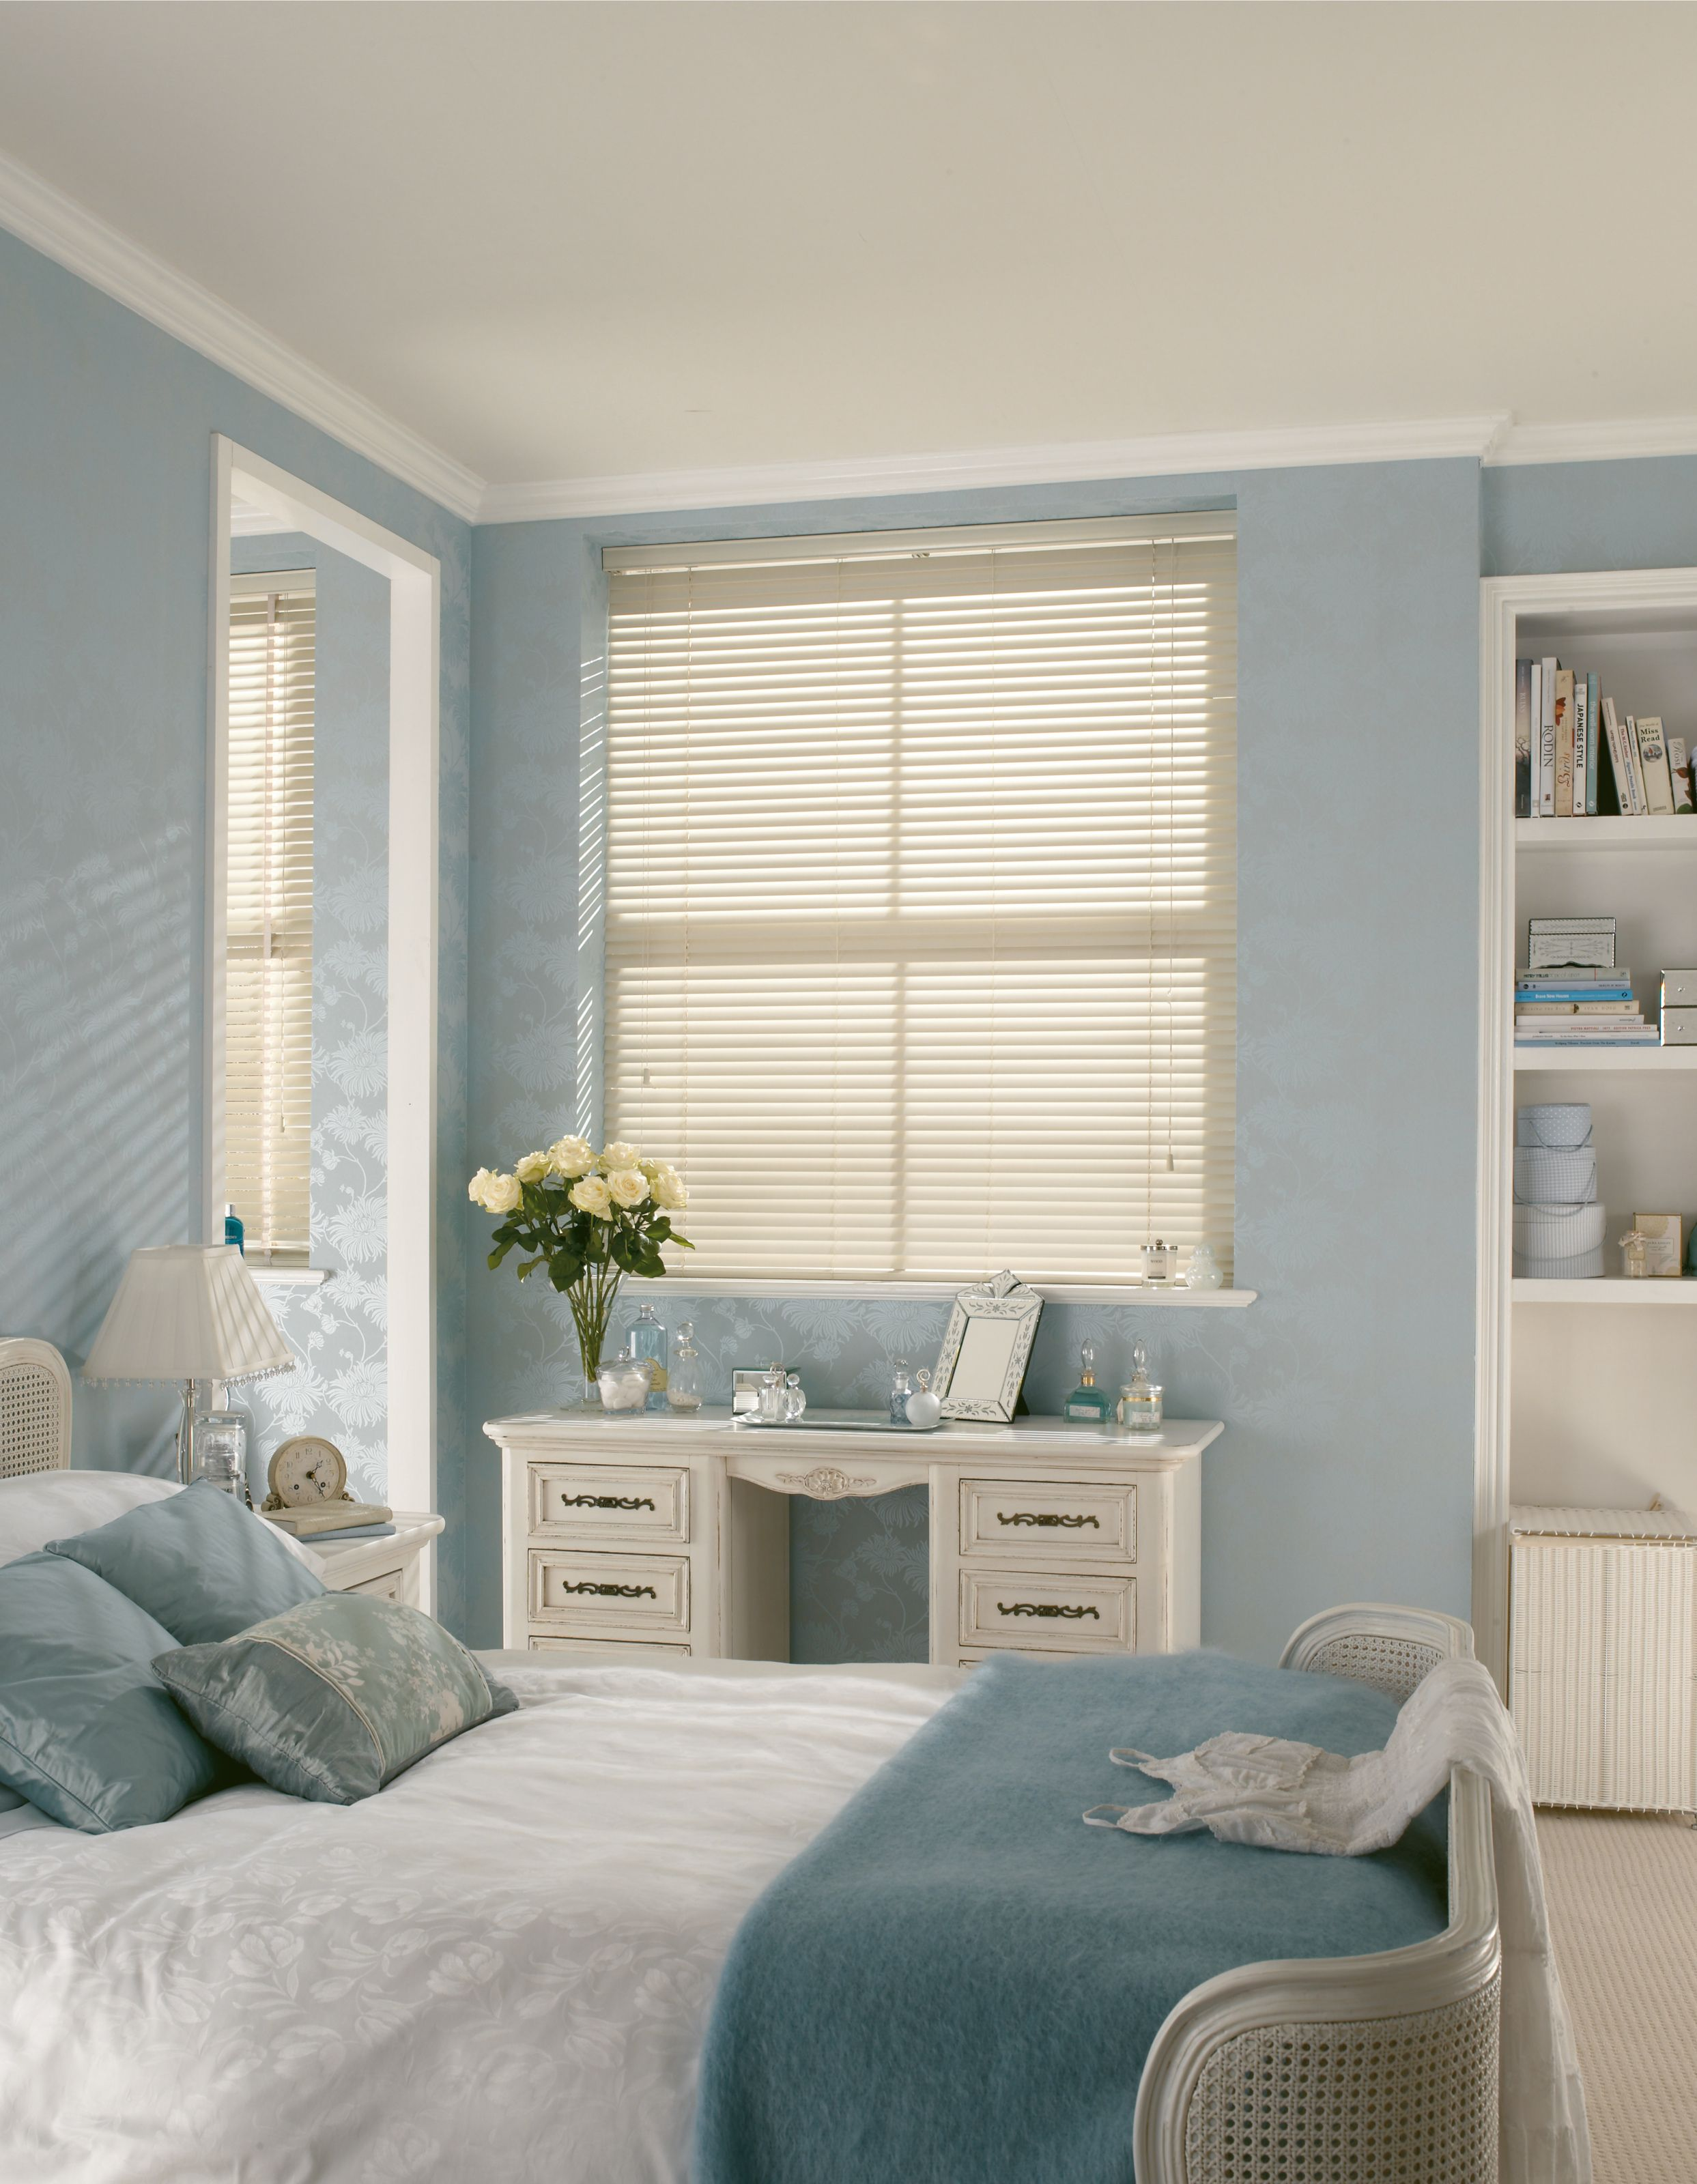 Venetian Blinds | 50% Off Made To Measure Venetian Blinds | Hillarys™